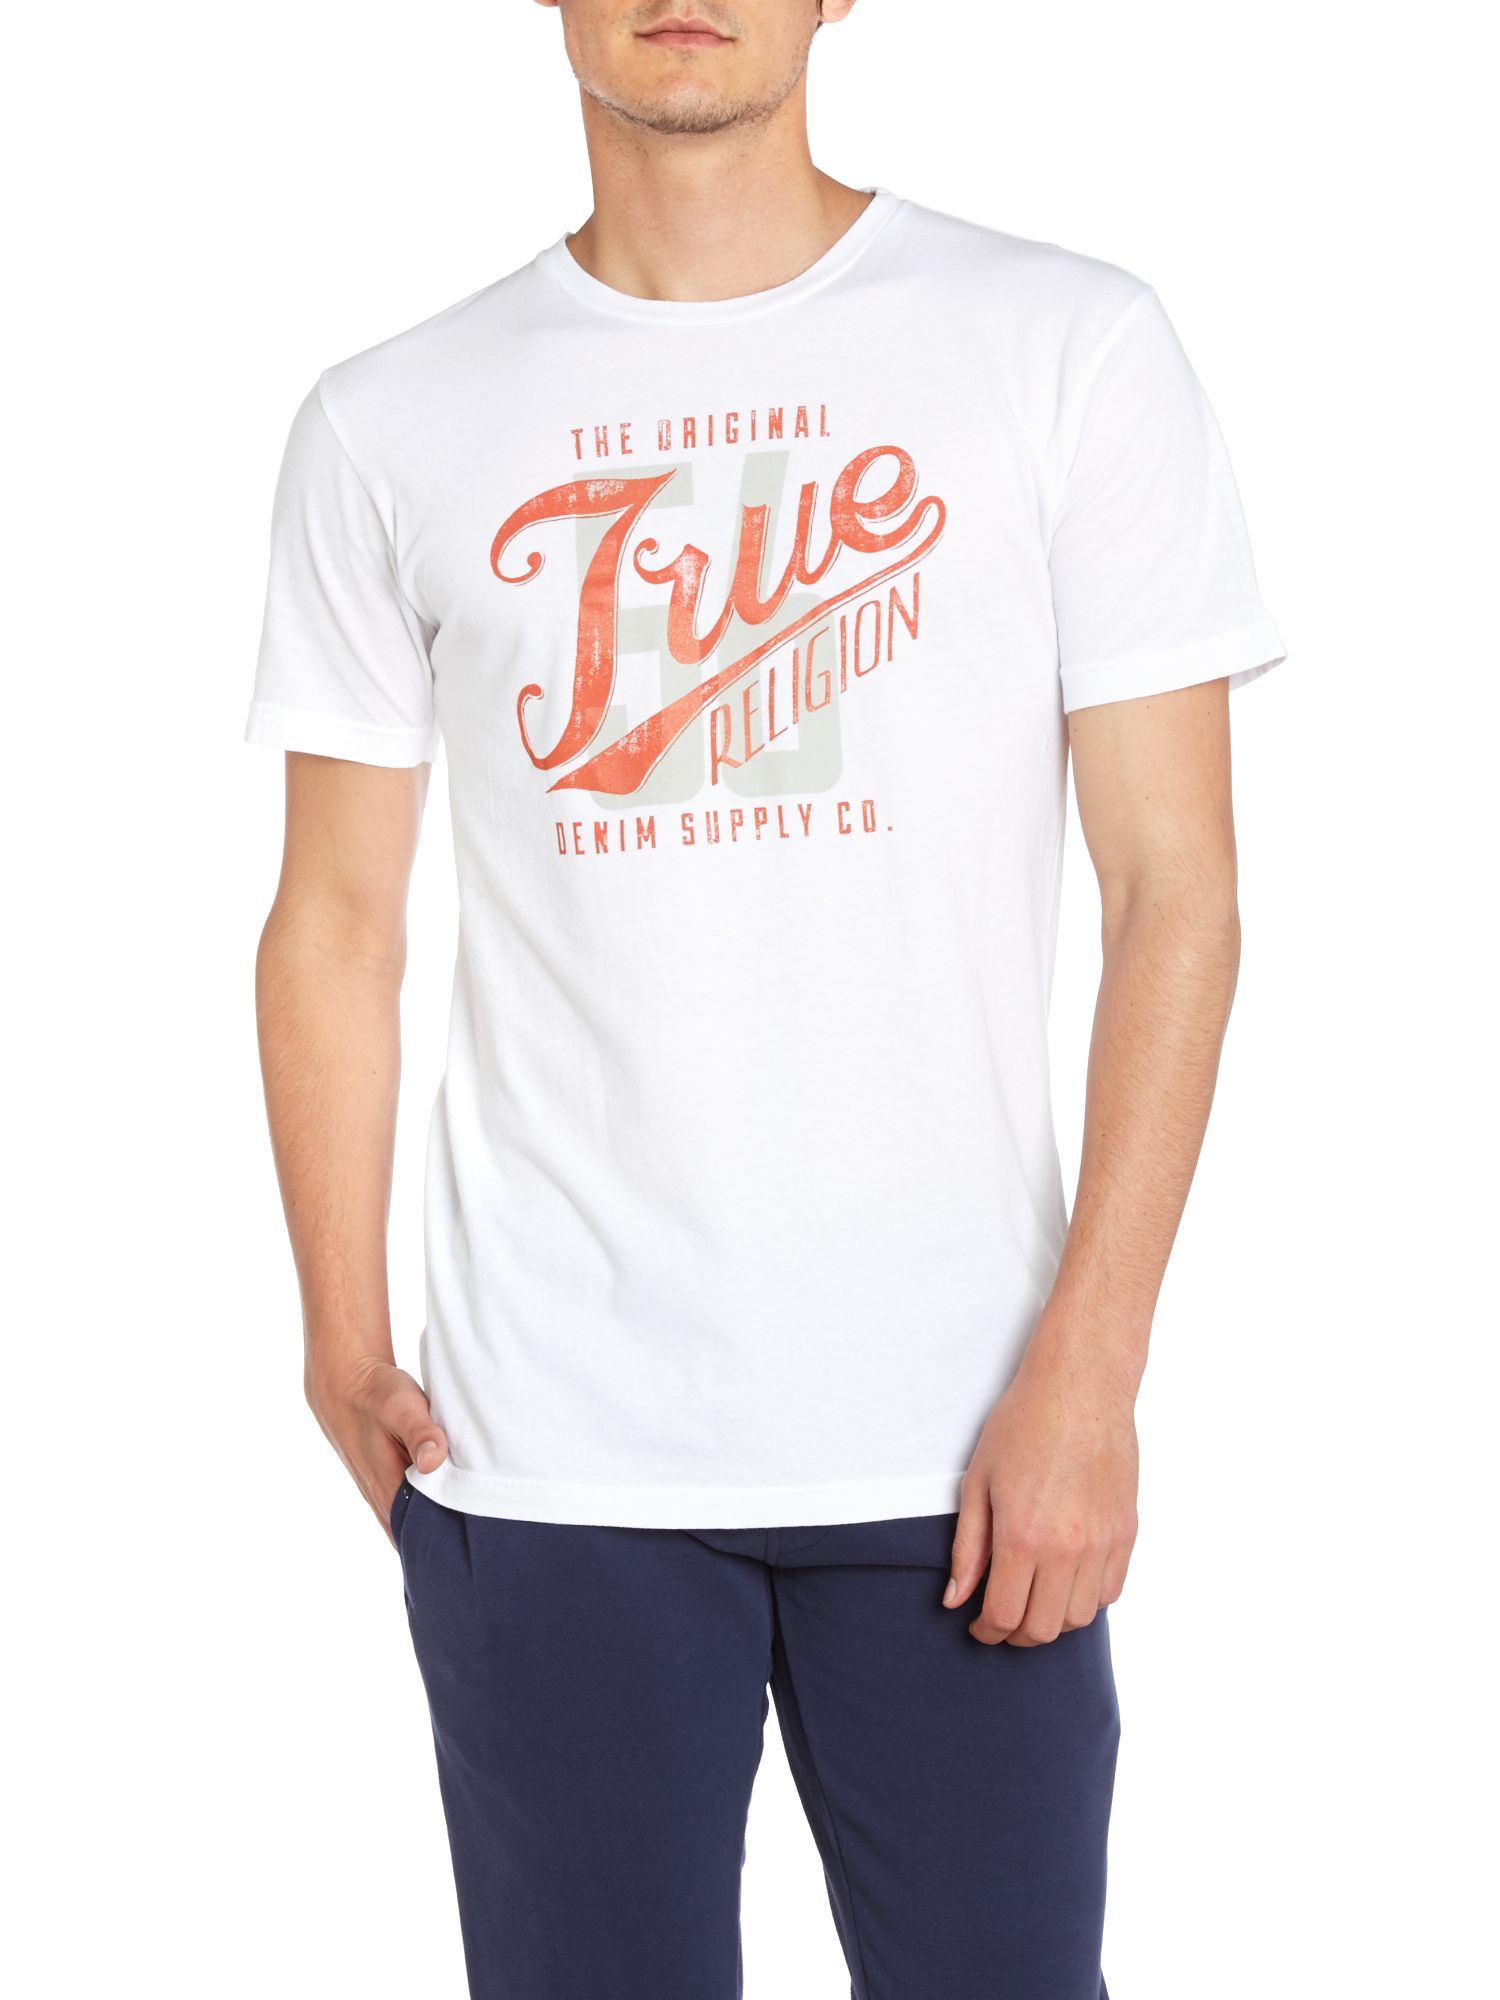 57 true print crew neck t shirt